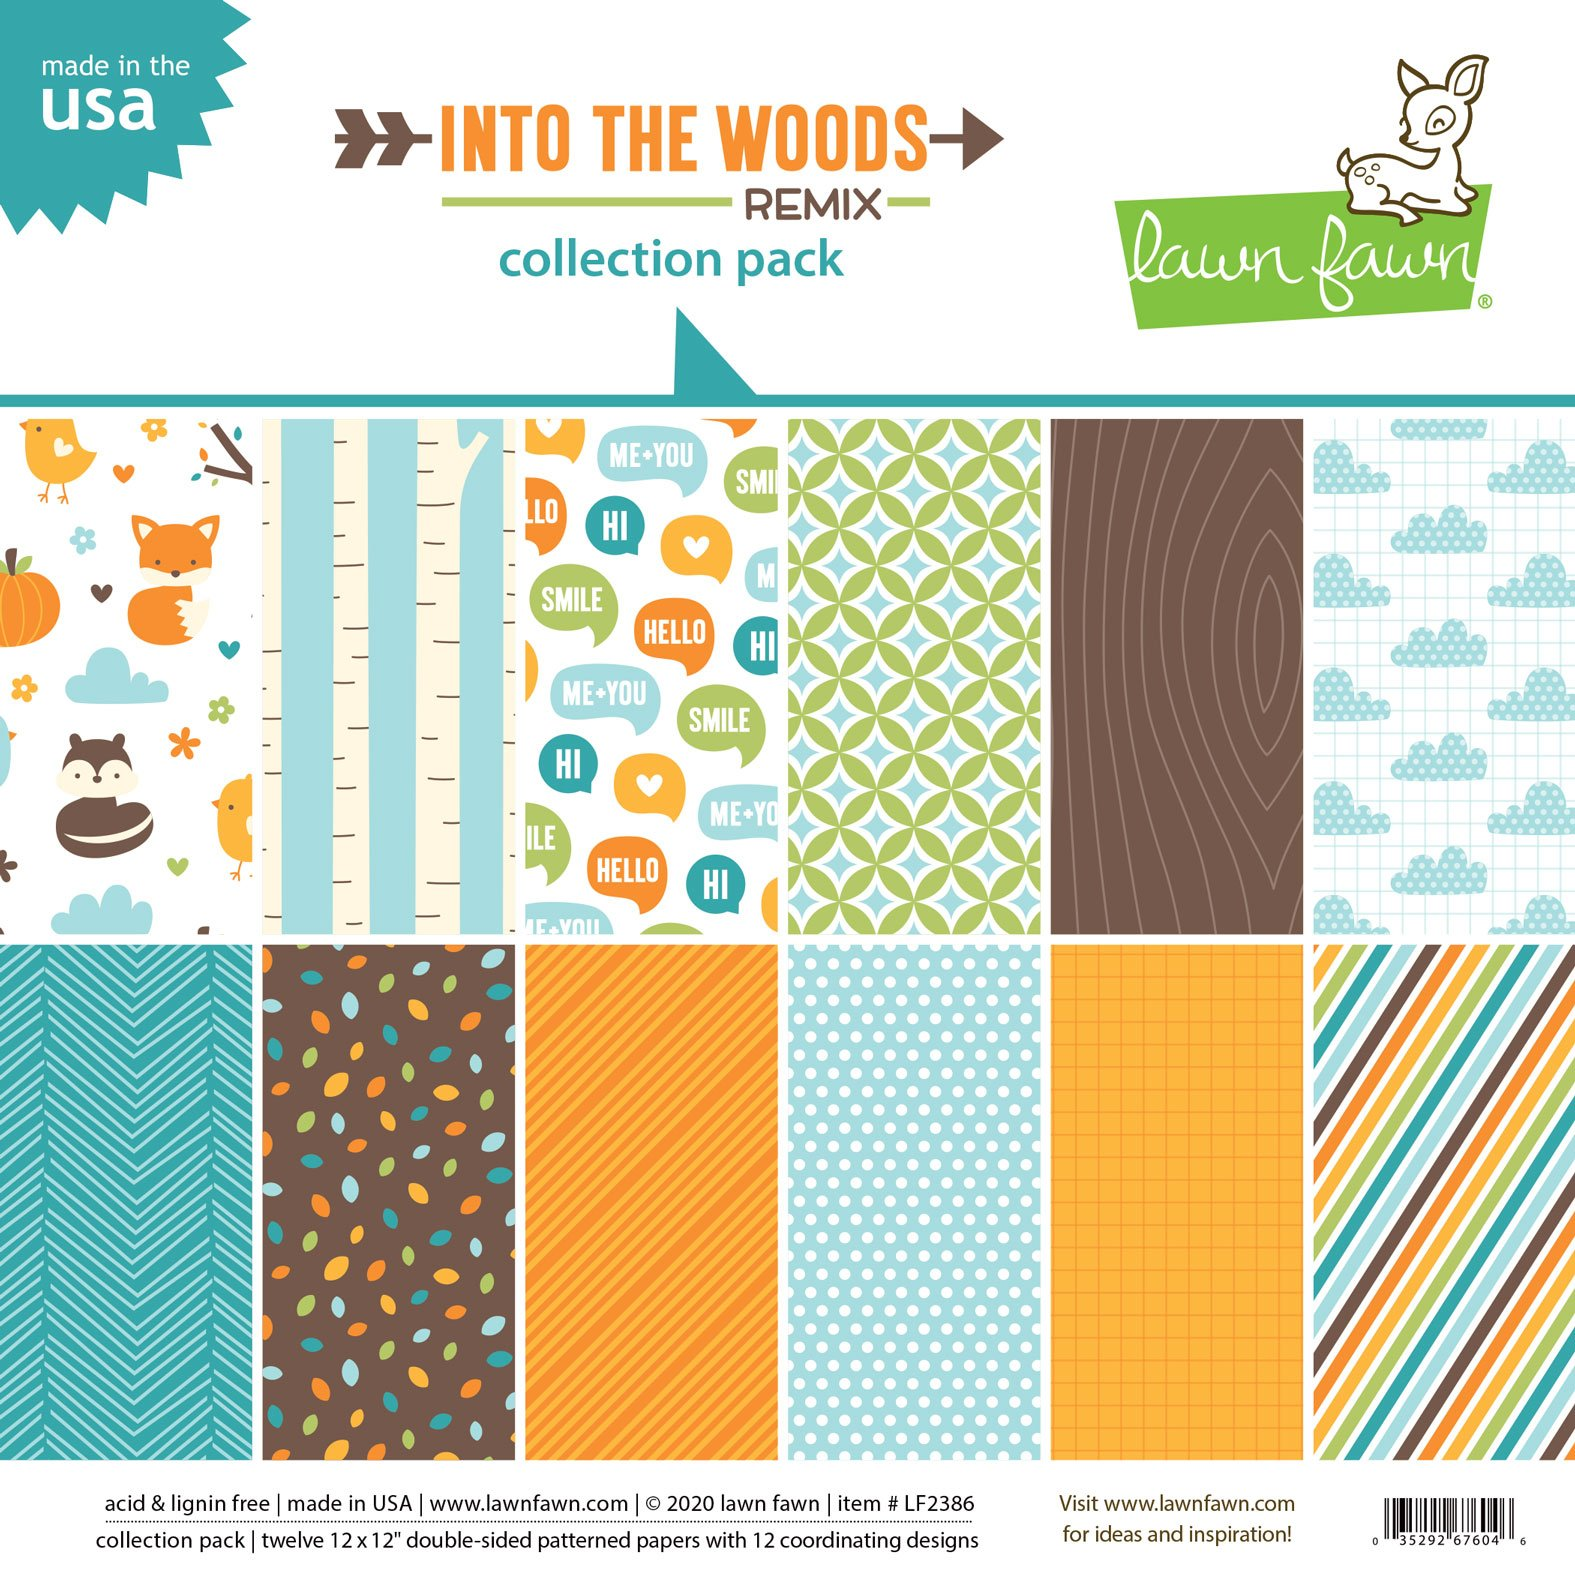 Lawn Fawn Into The Woods Remix - 12x12 Collection Pack